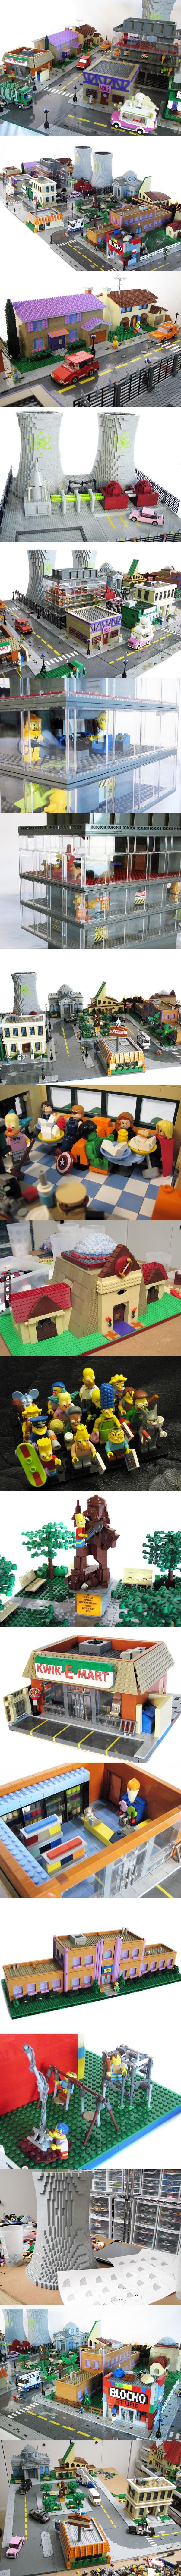 Lego Springfield.. yeah, now I want to build this in minecraft